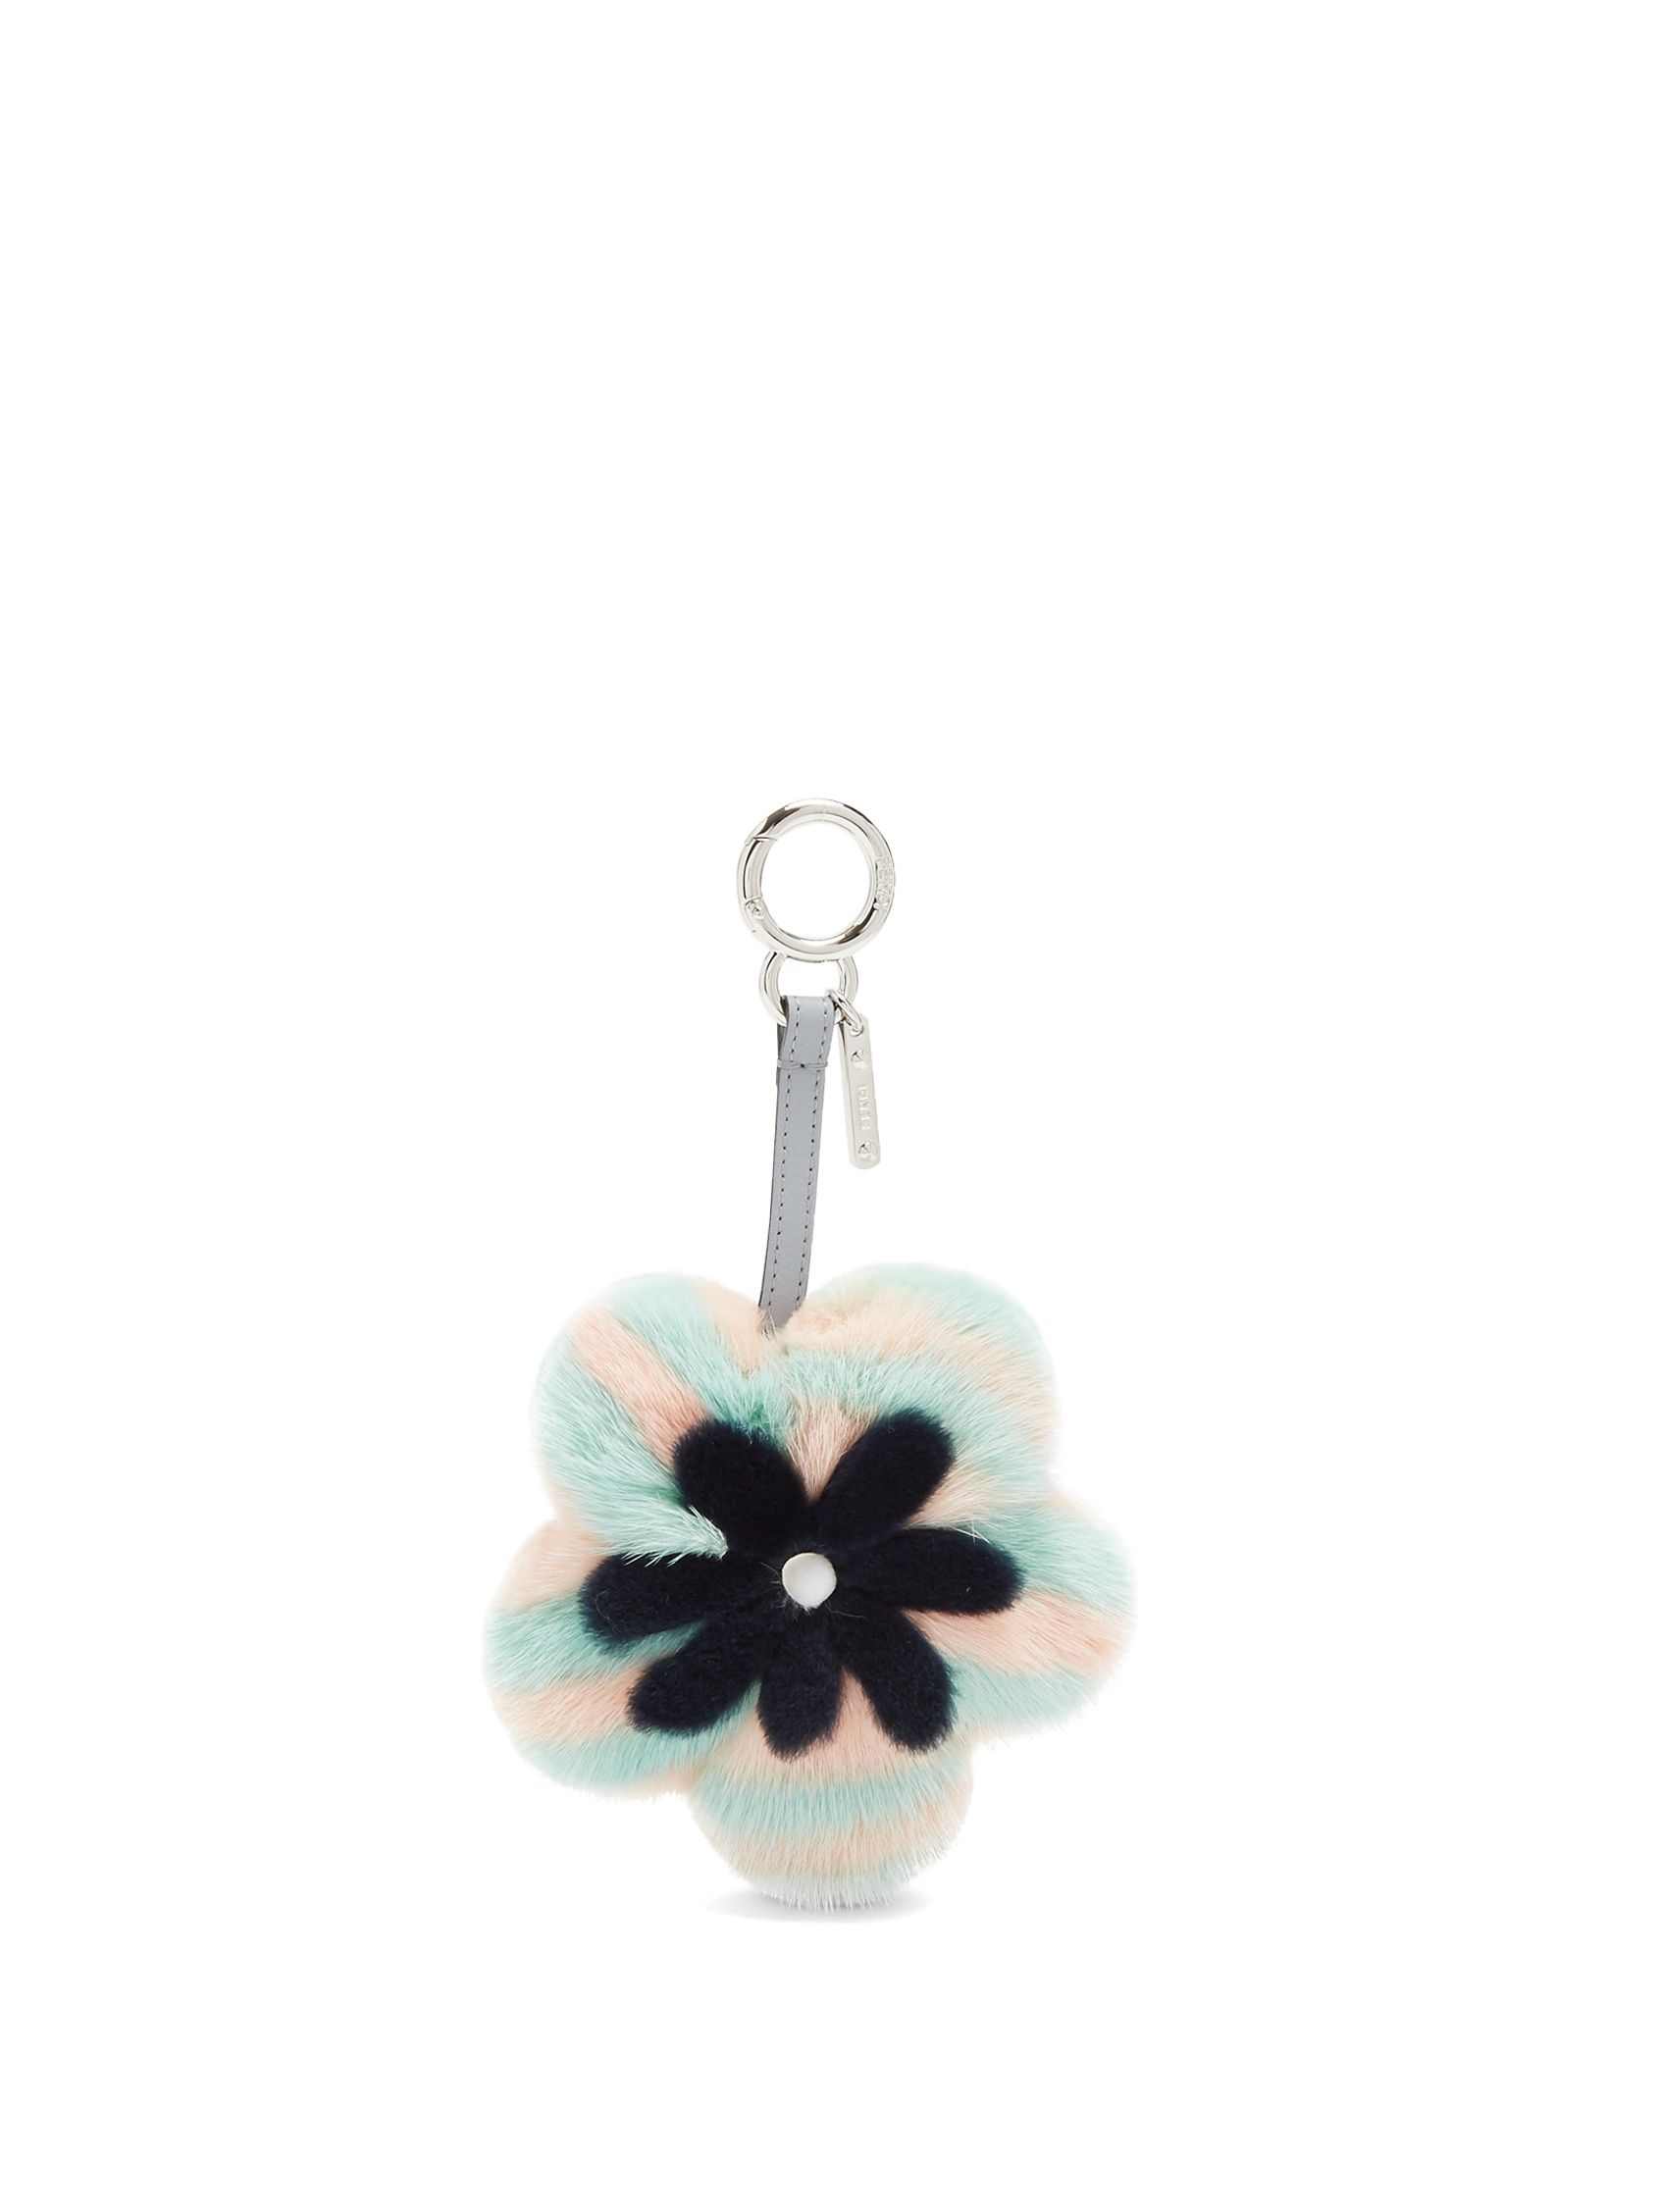 5ea9841b33 Flower fur key fob